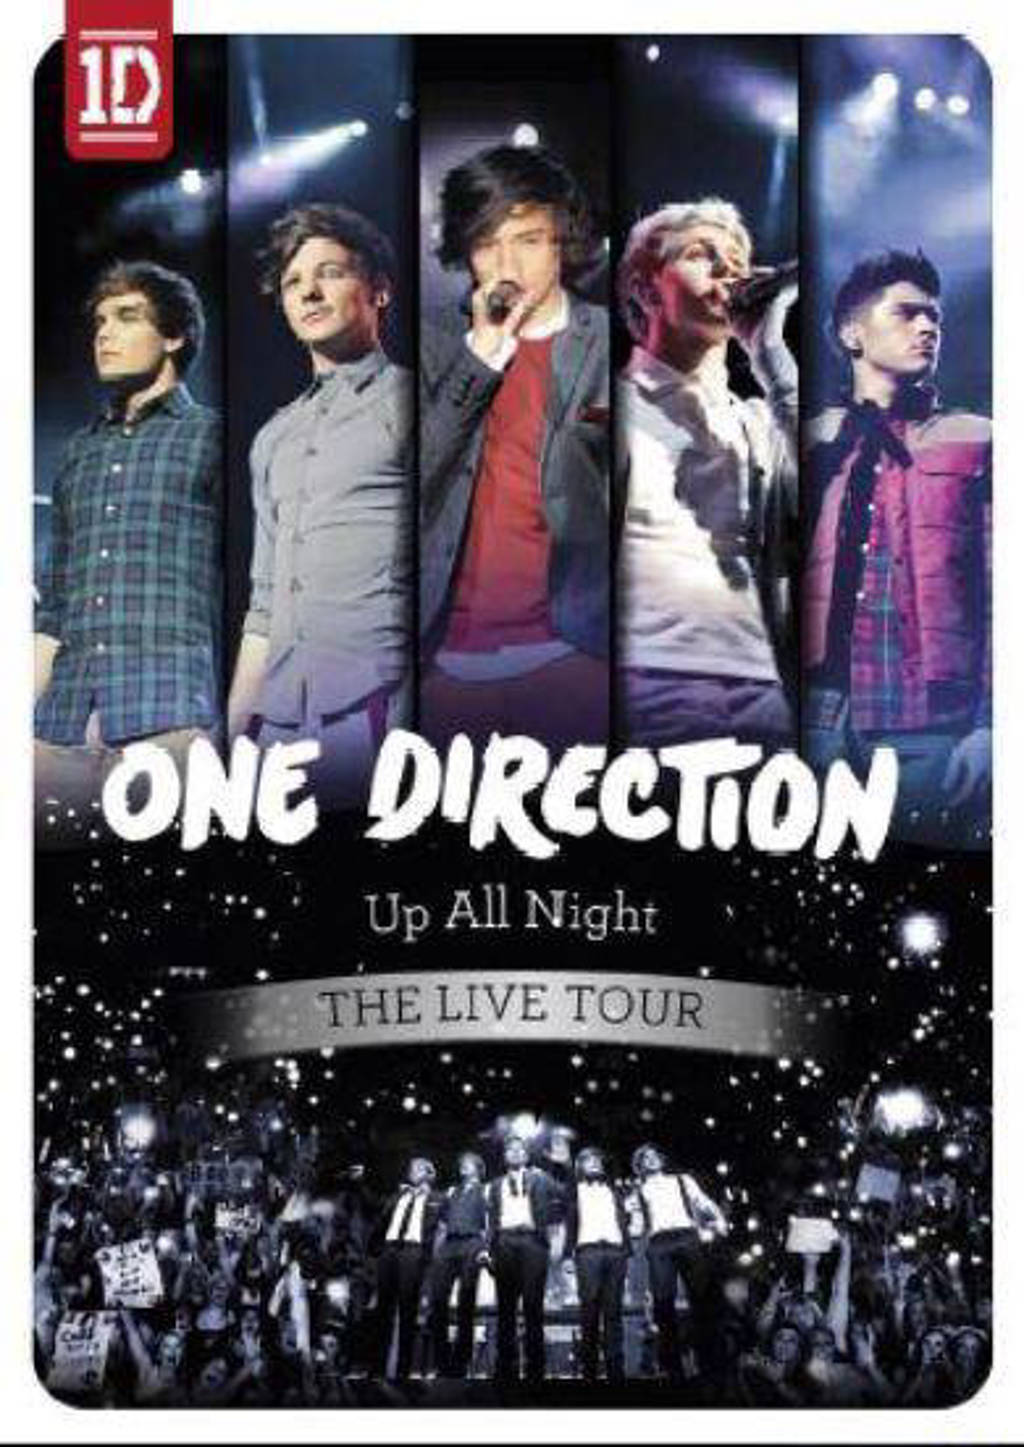 One Direction - Up All Night - The Live Tour (DVD)